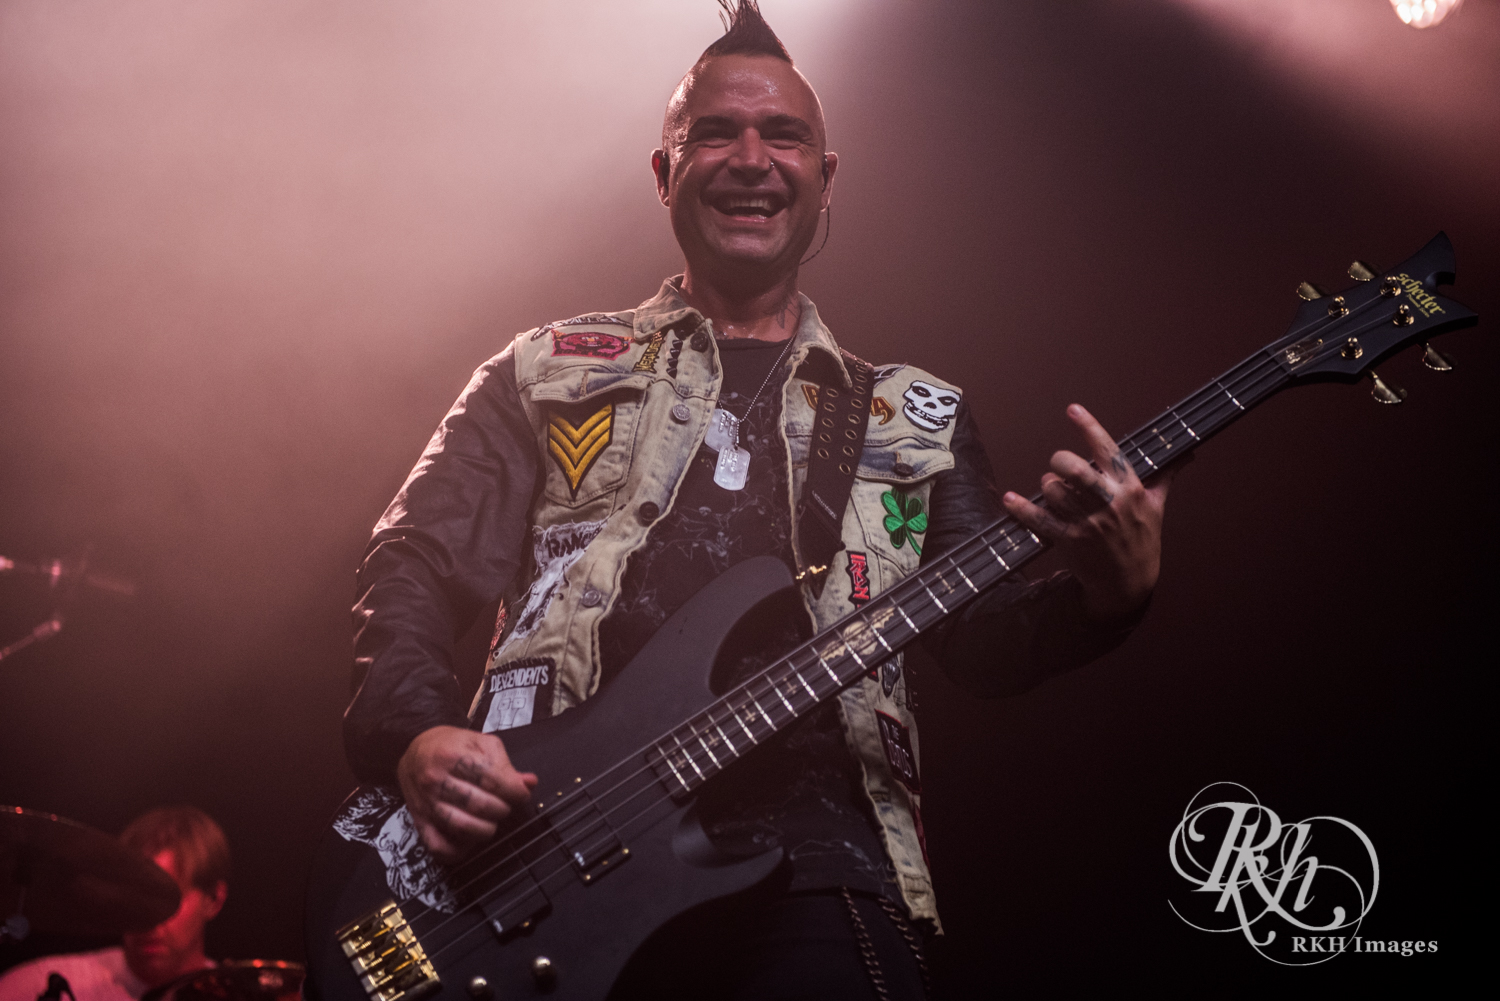 a7x rkh images (44 of 52).jpg